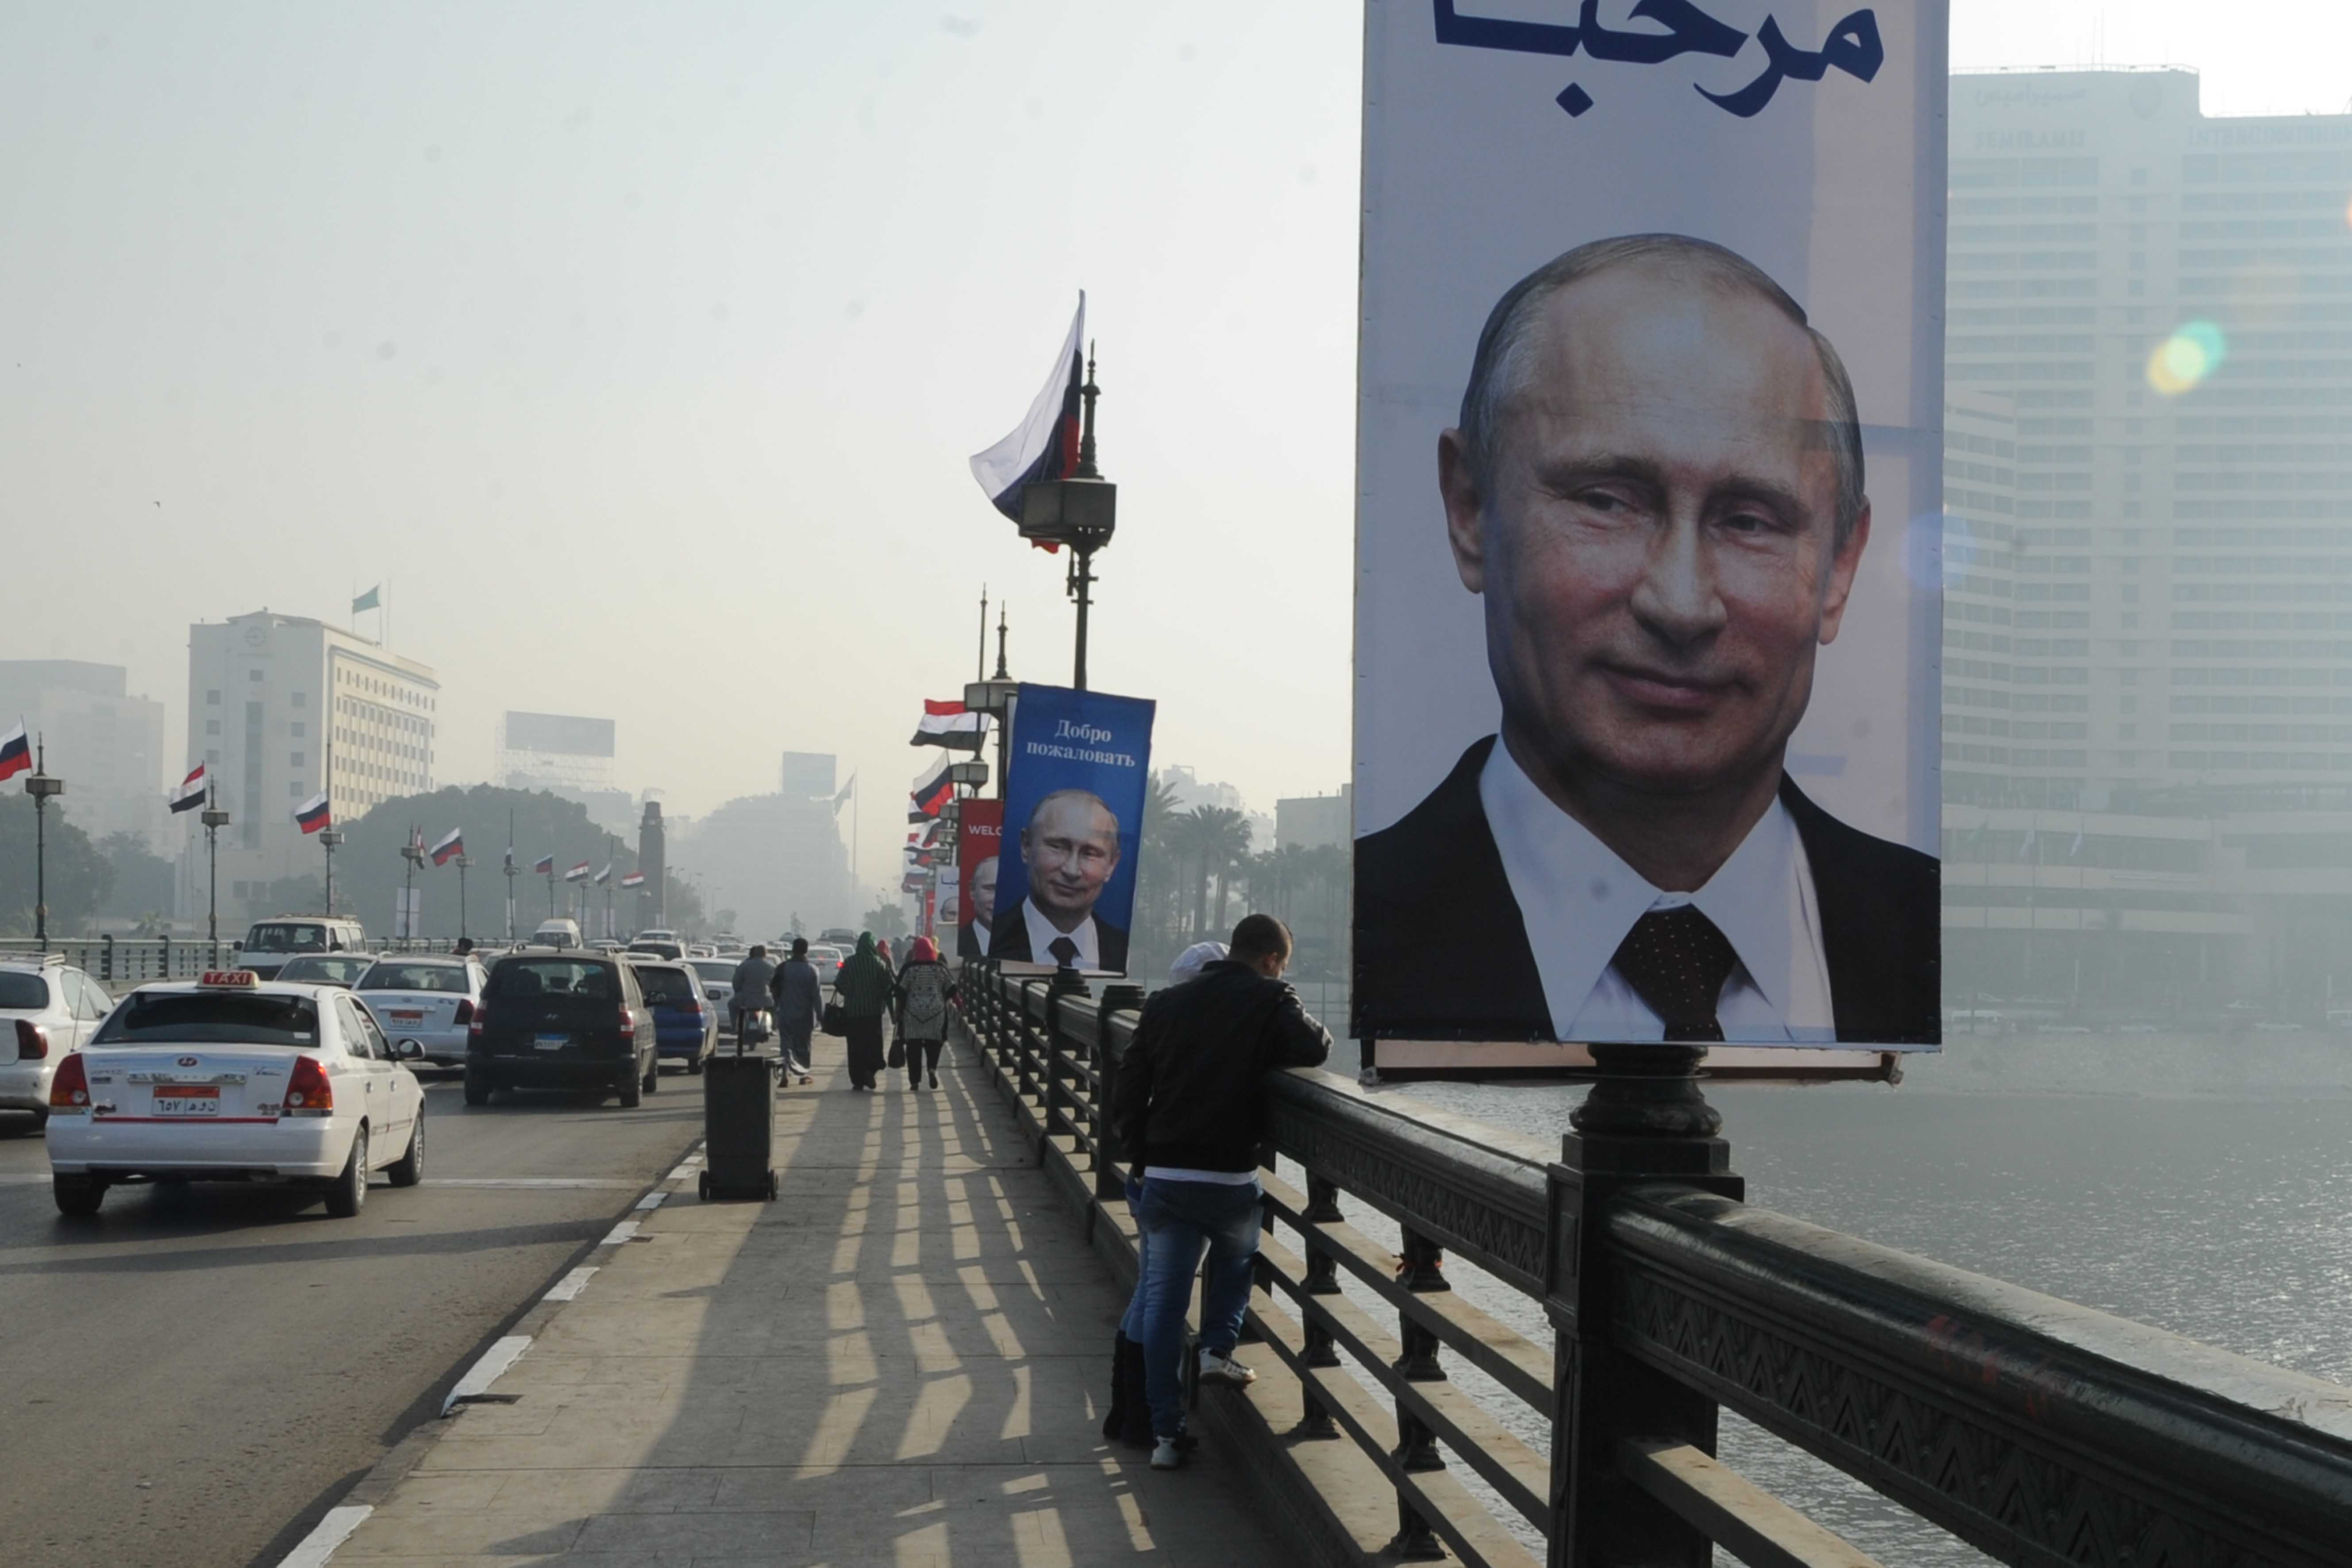 Cairo streets have been decorated with Vladimir Putin portraits and Russian flags to mark the Russian president's visit to Egypt on 9 and 10 February (DNE Photo)